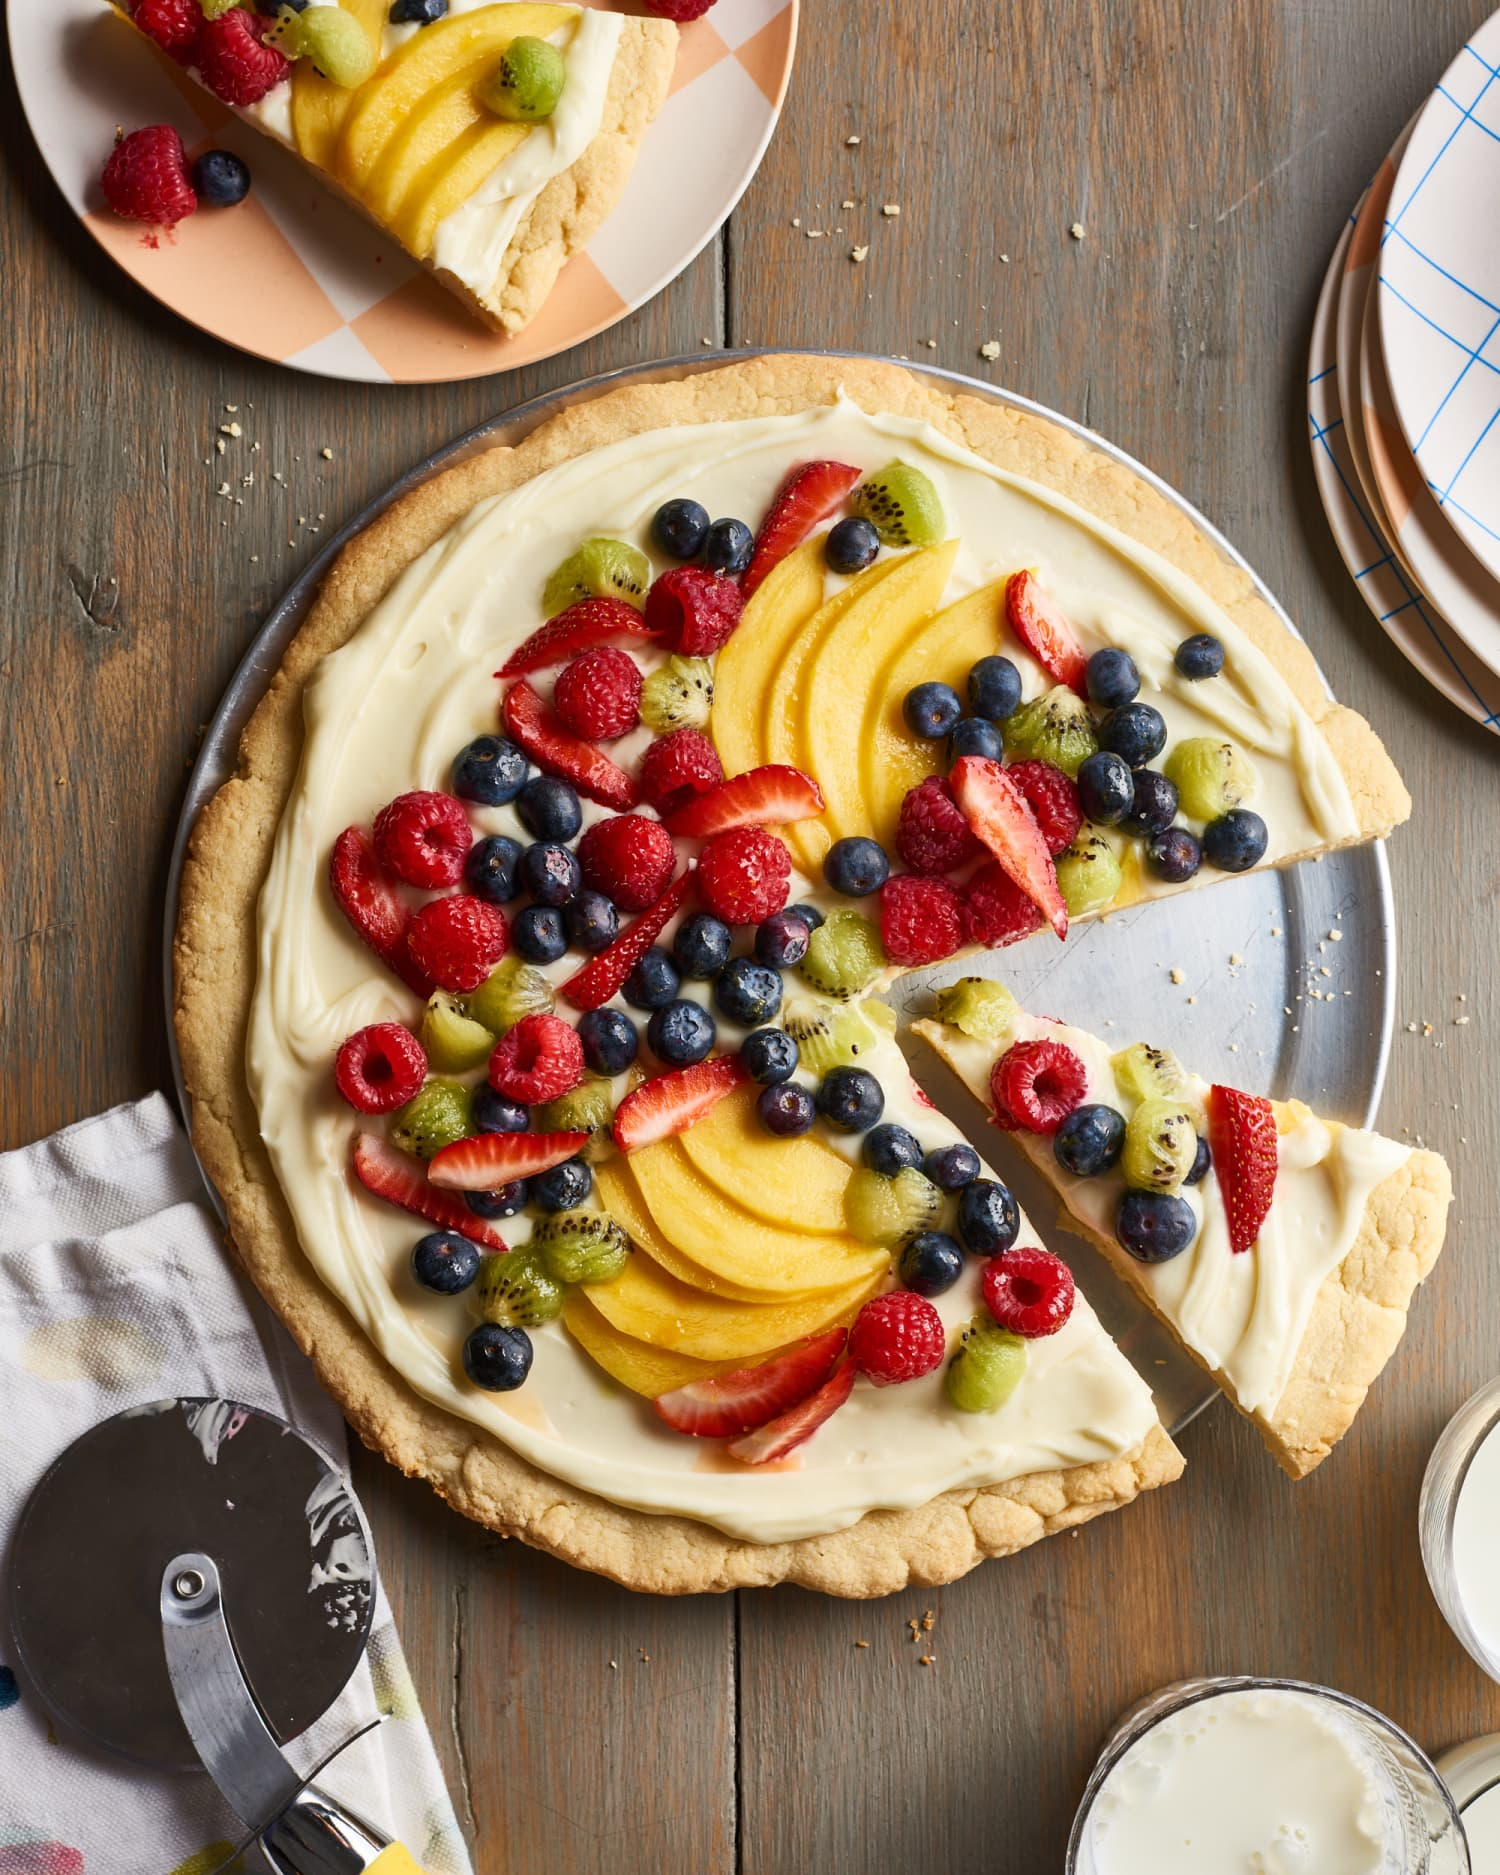 How To Make an Easy Fruit Pizza with Sugar Cookie Crust